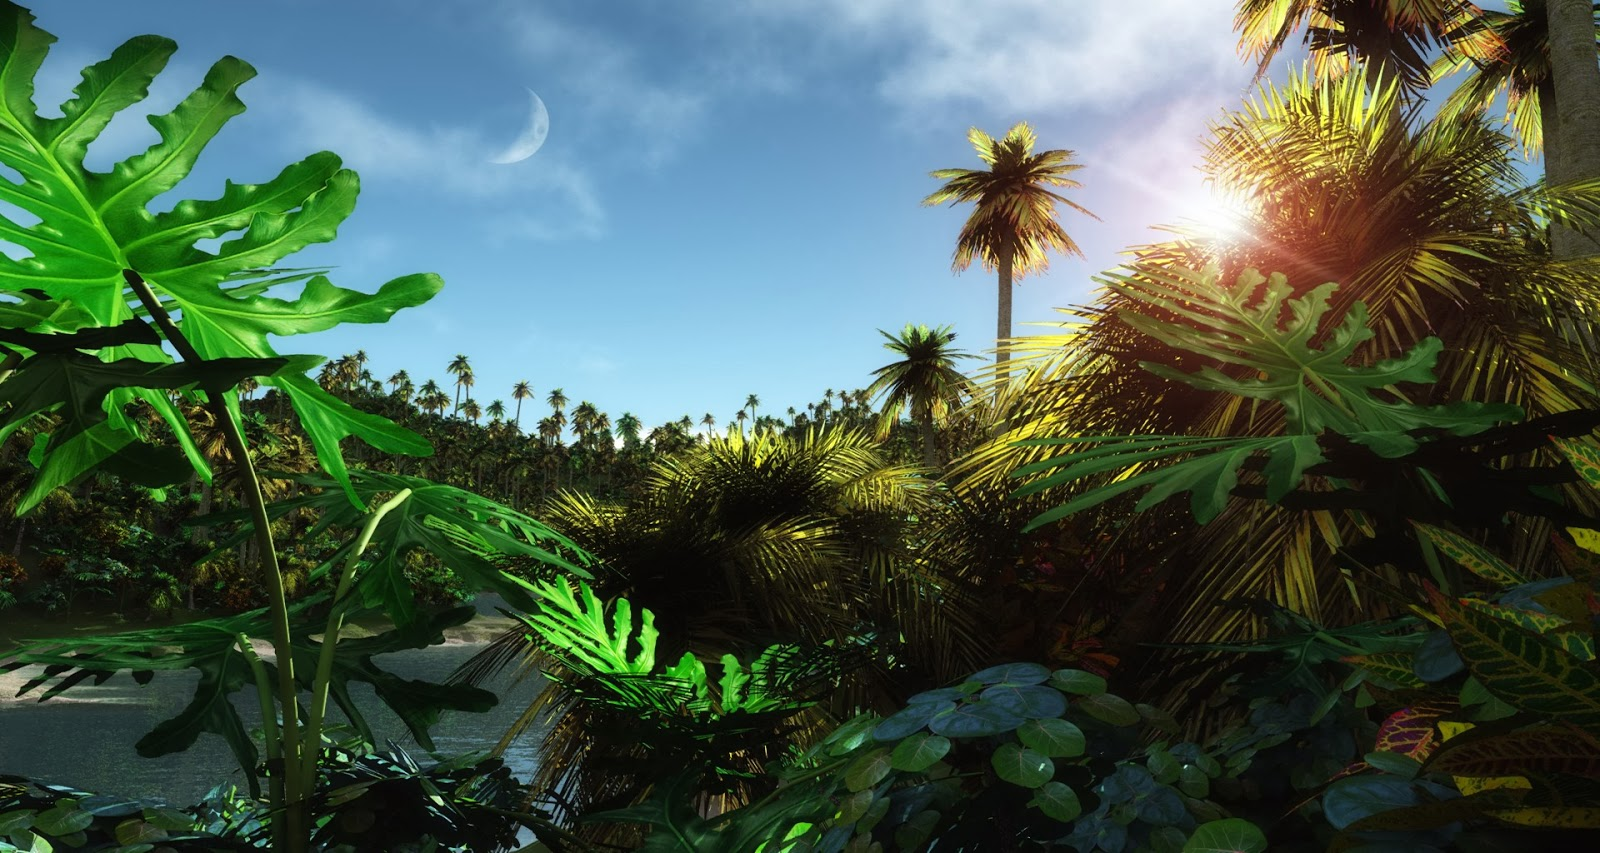 3d hd nature wallpapers - photo #38